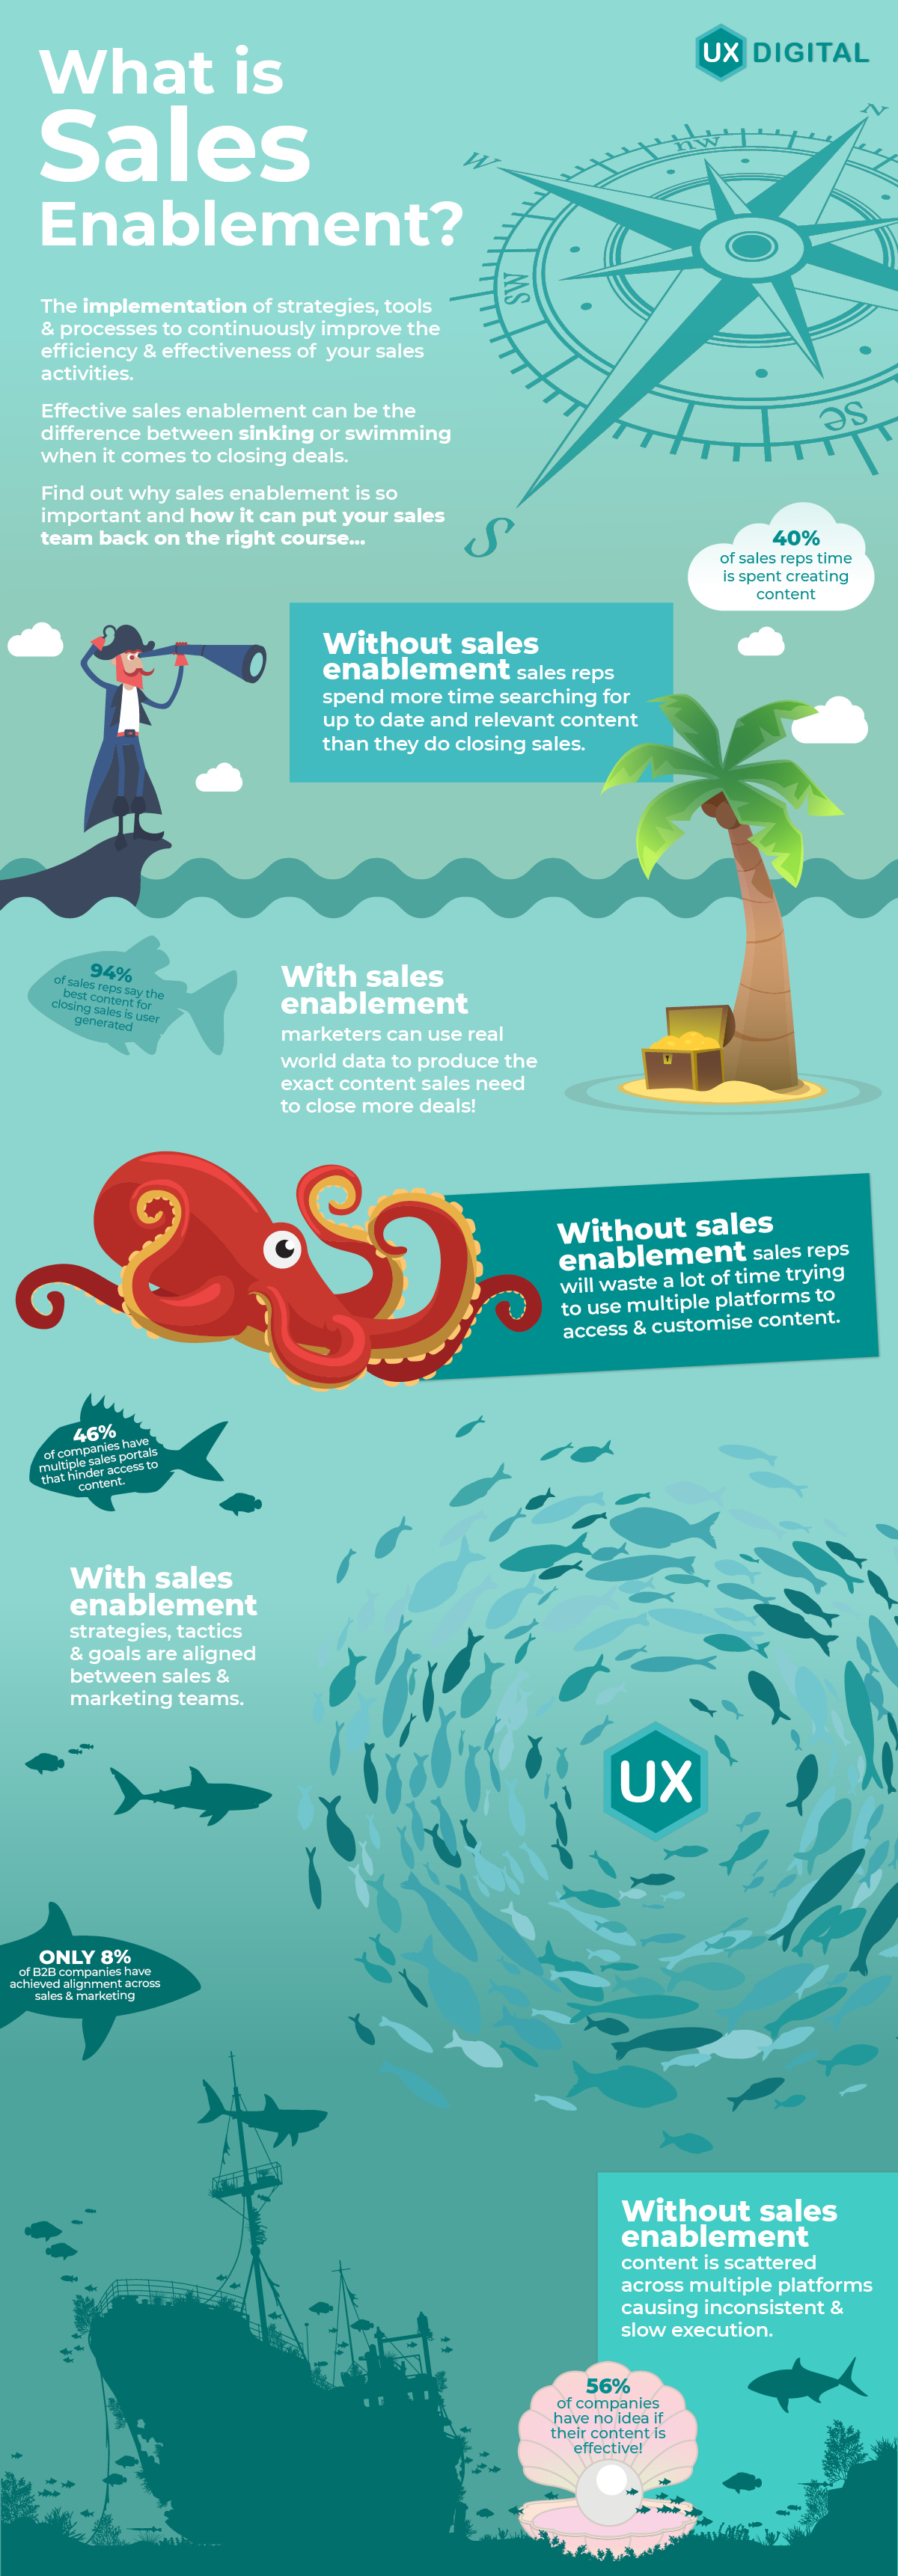 What is Sales Enablement? Infographic by UX-Digital